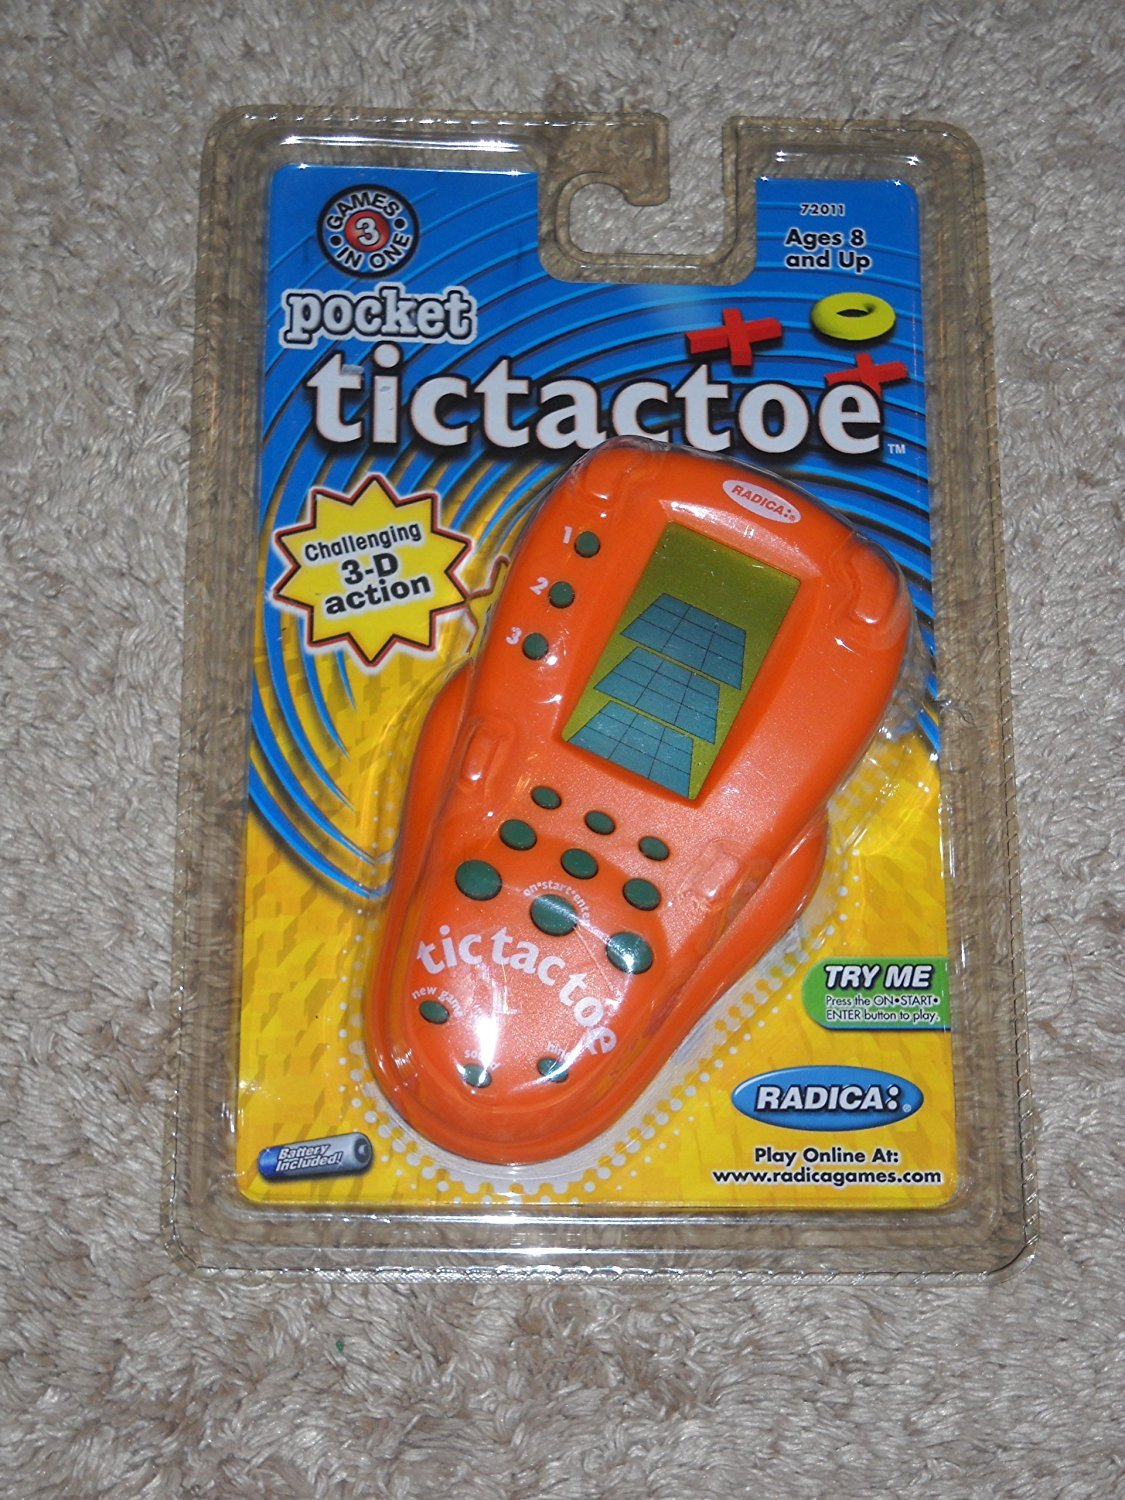 【おすすめ】 [Radica]Radica Electronic Pocket TicTacToe Handheld Game By: 4636112 [並行輸入品] B003PLELTC, 伊良部町 1e9a471b